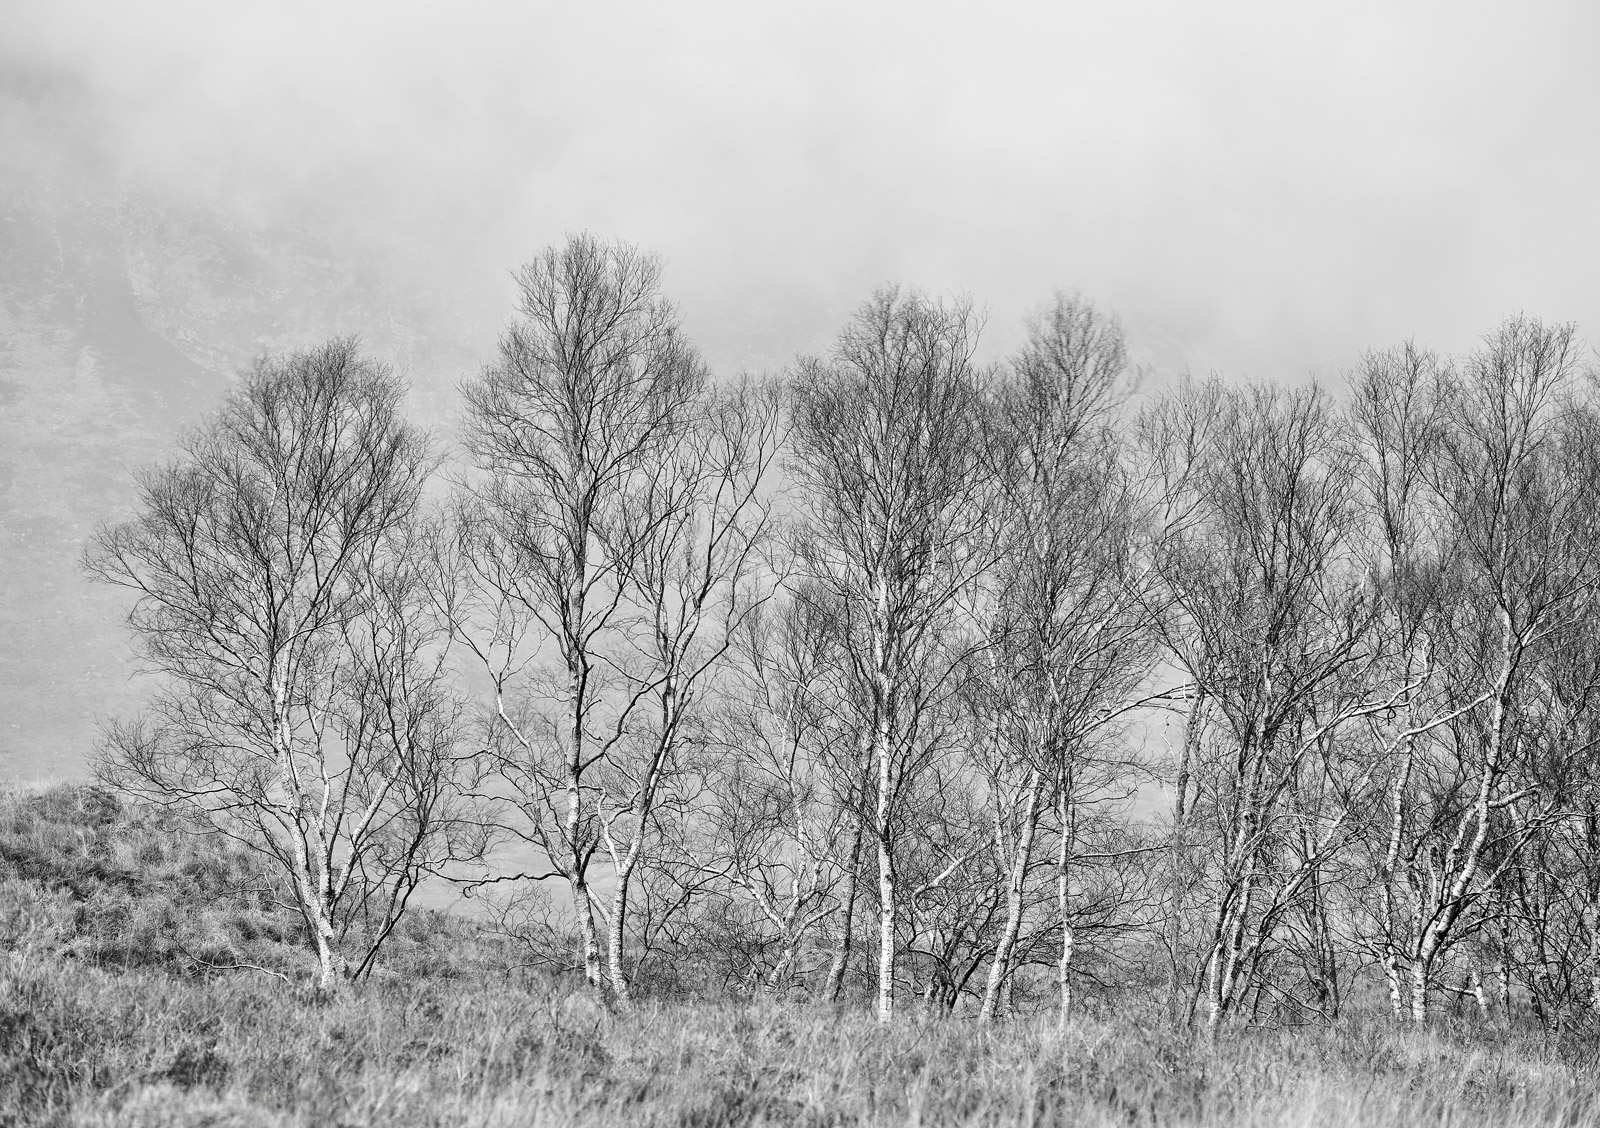 I thought this wee grove of spindly birch trees at the end of Glen Ettive looked spectacular aginst the mountain backdrop shrouded...